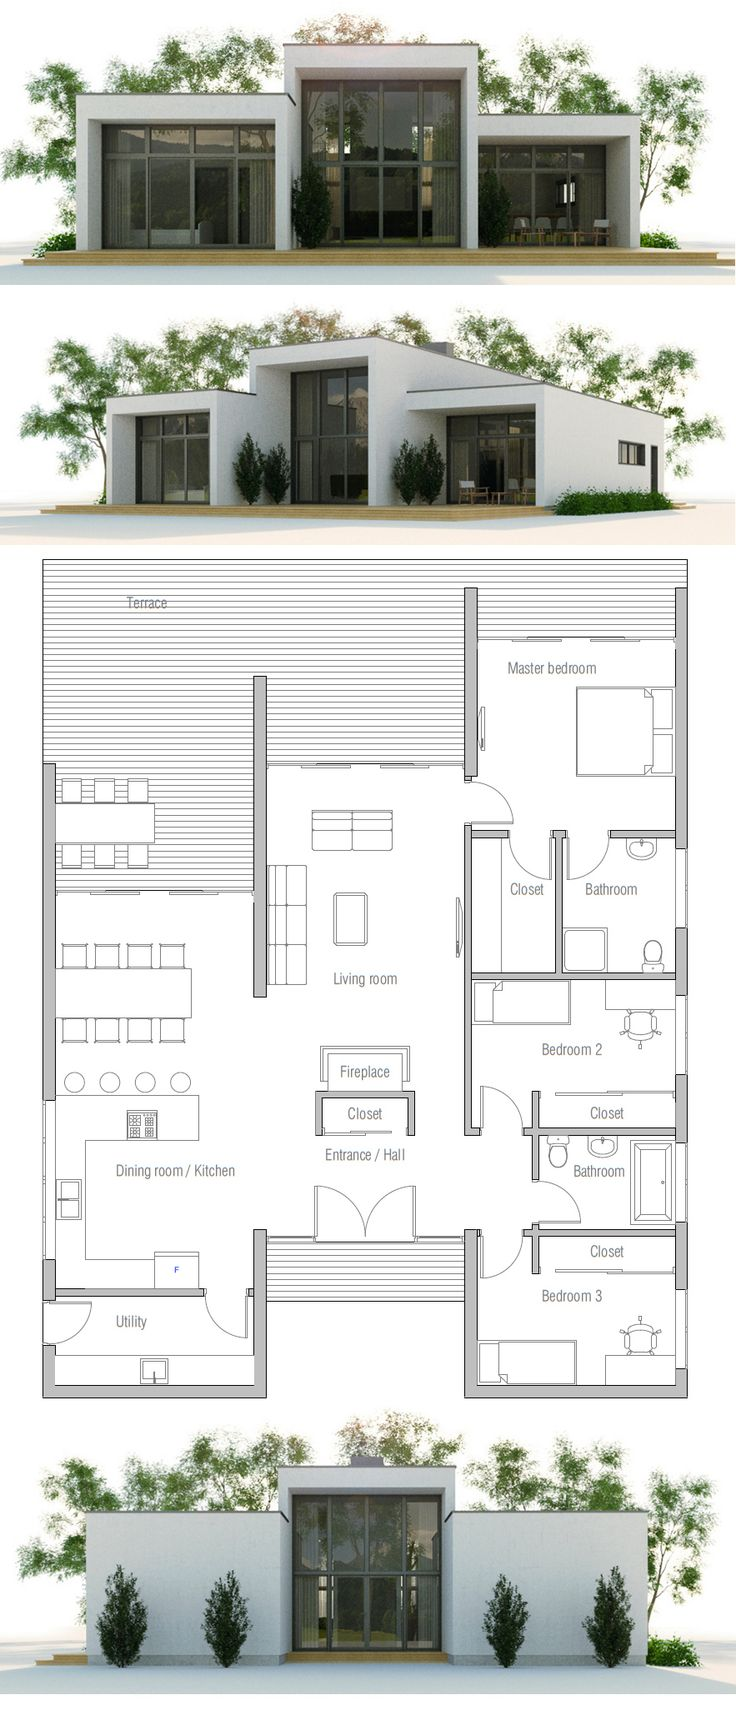 1000 images about maisons sur pinterest plans de maison for Plan maison minimaliste